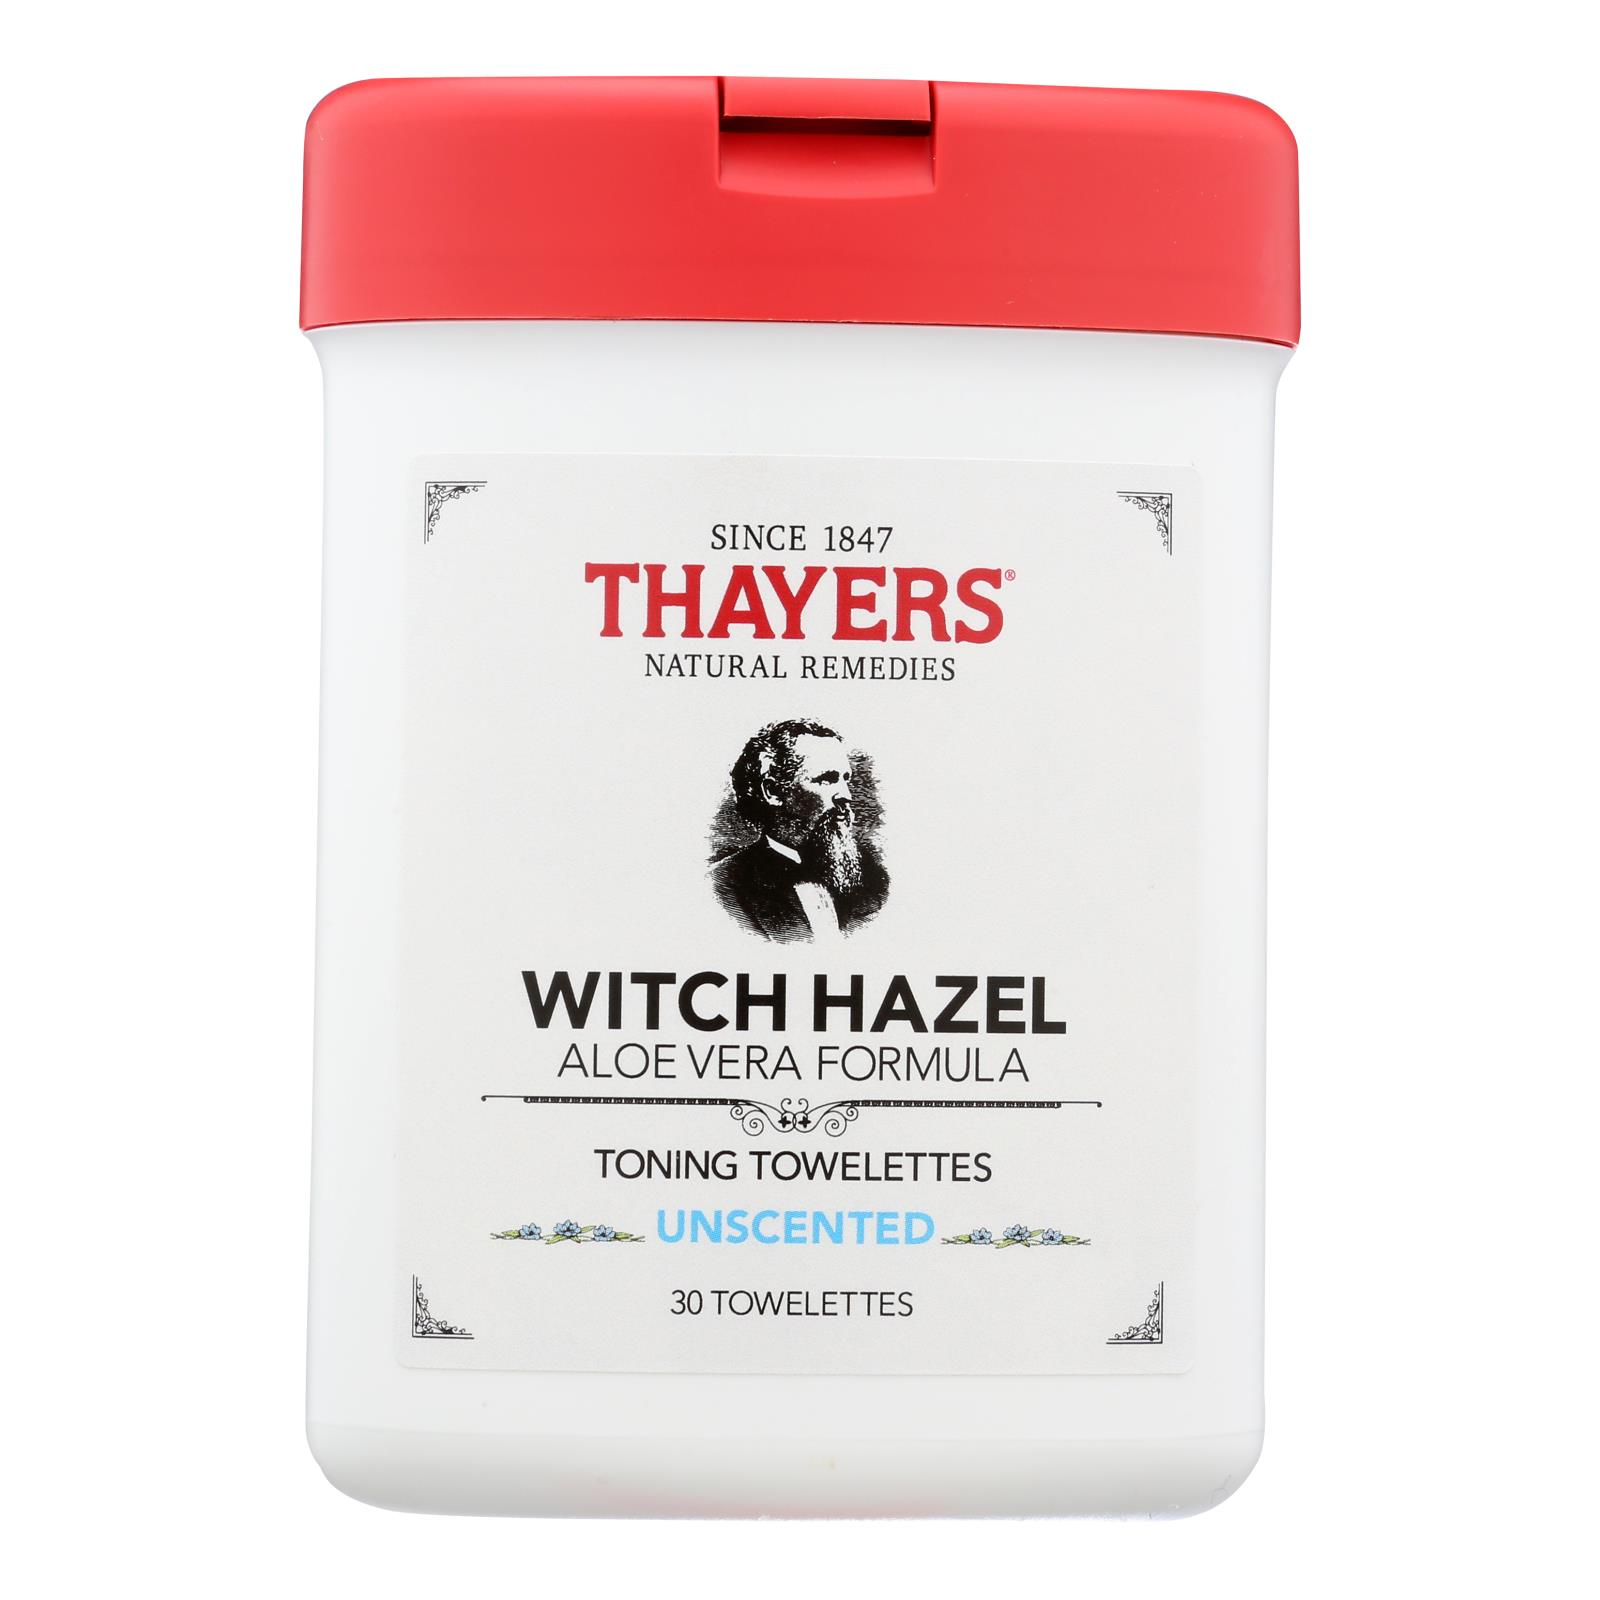 Thayers - Toner Twlttes Unscented - 1 Each - 30 CT